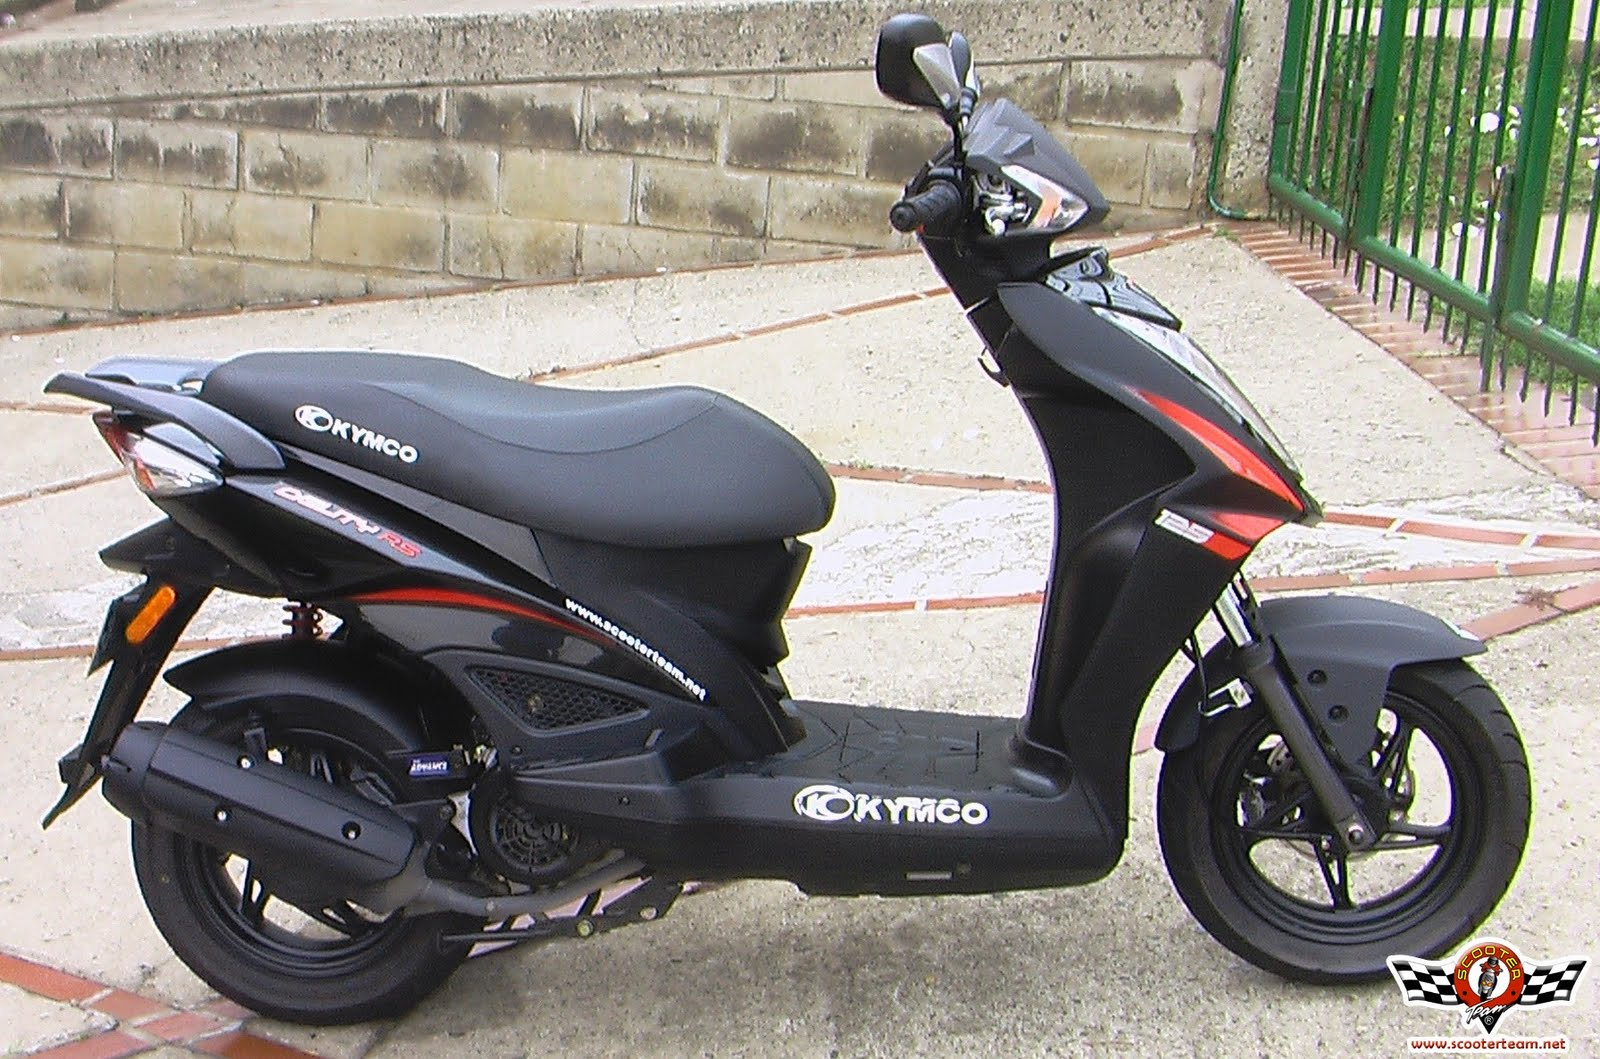 Kymco Agility 50 2006 images #101922